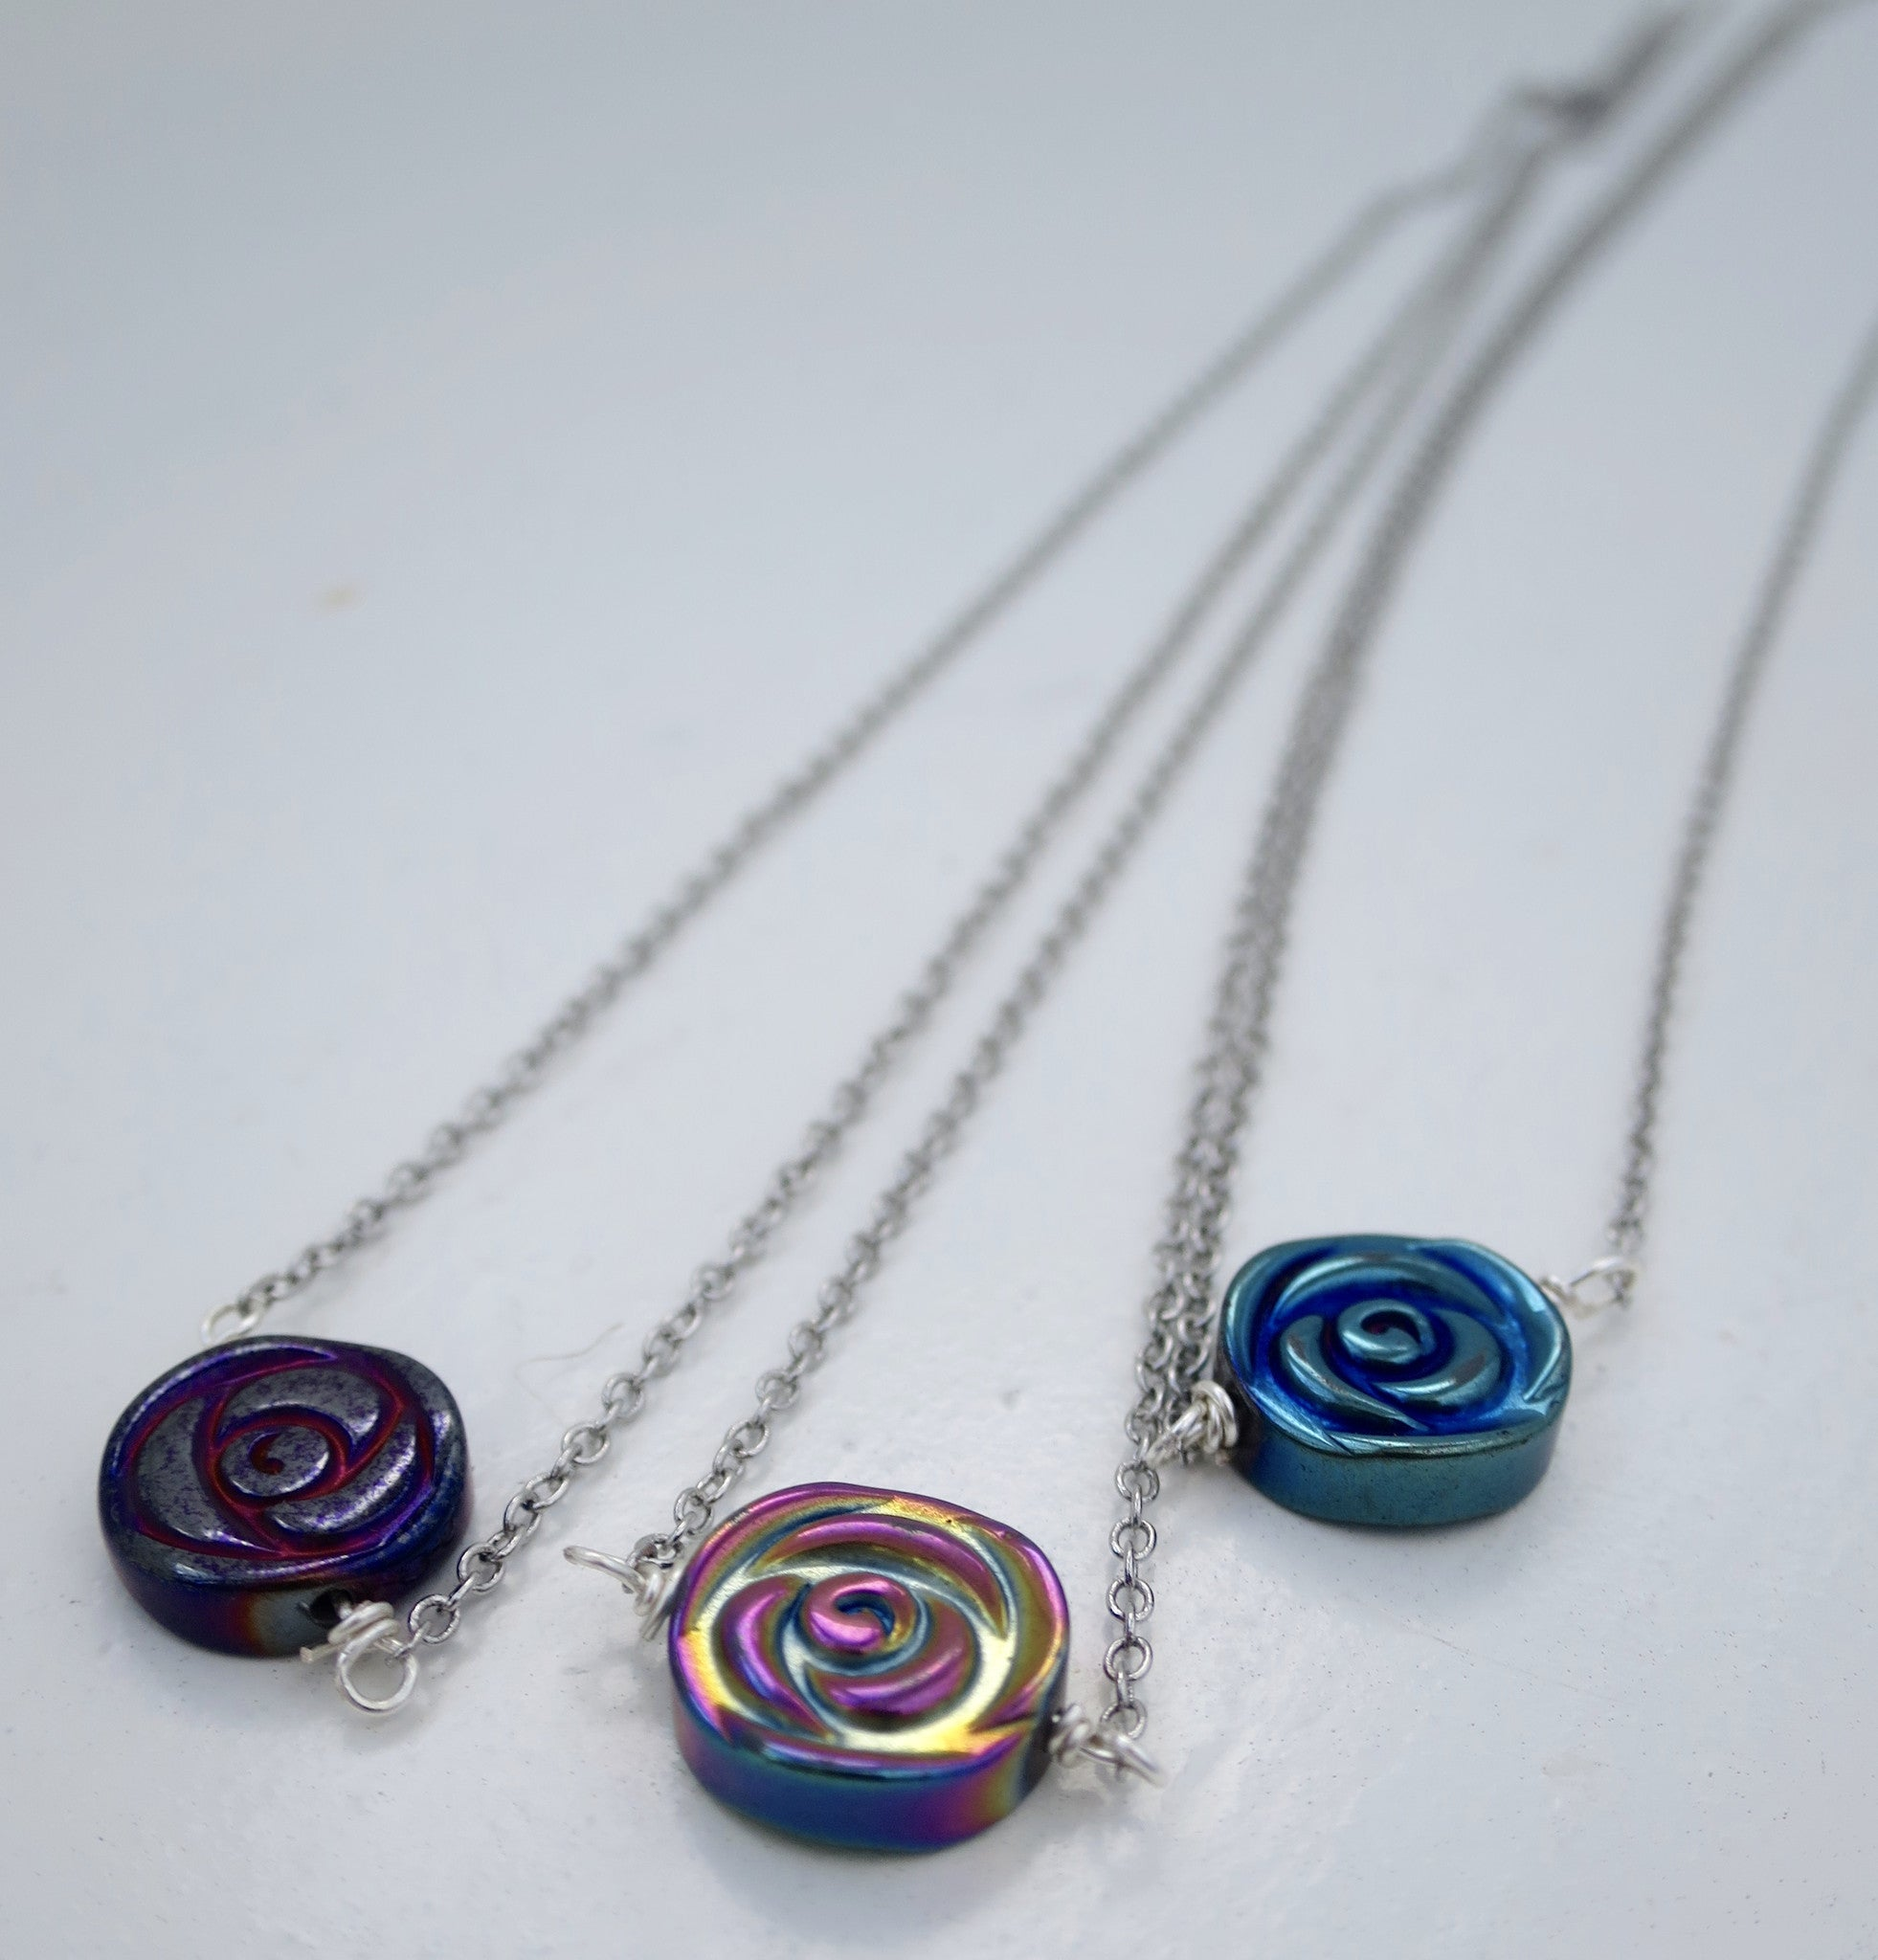 Hematite Rose  Necklace - Pretty Princess Style  - 2